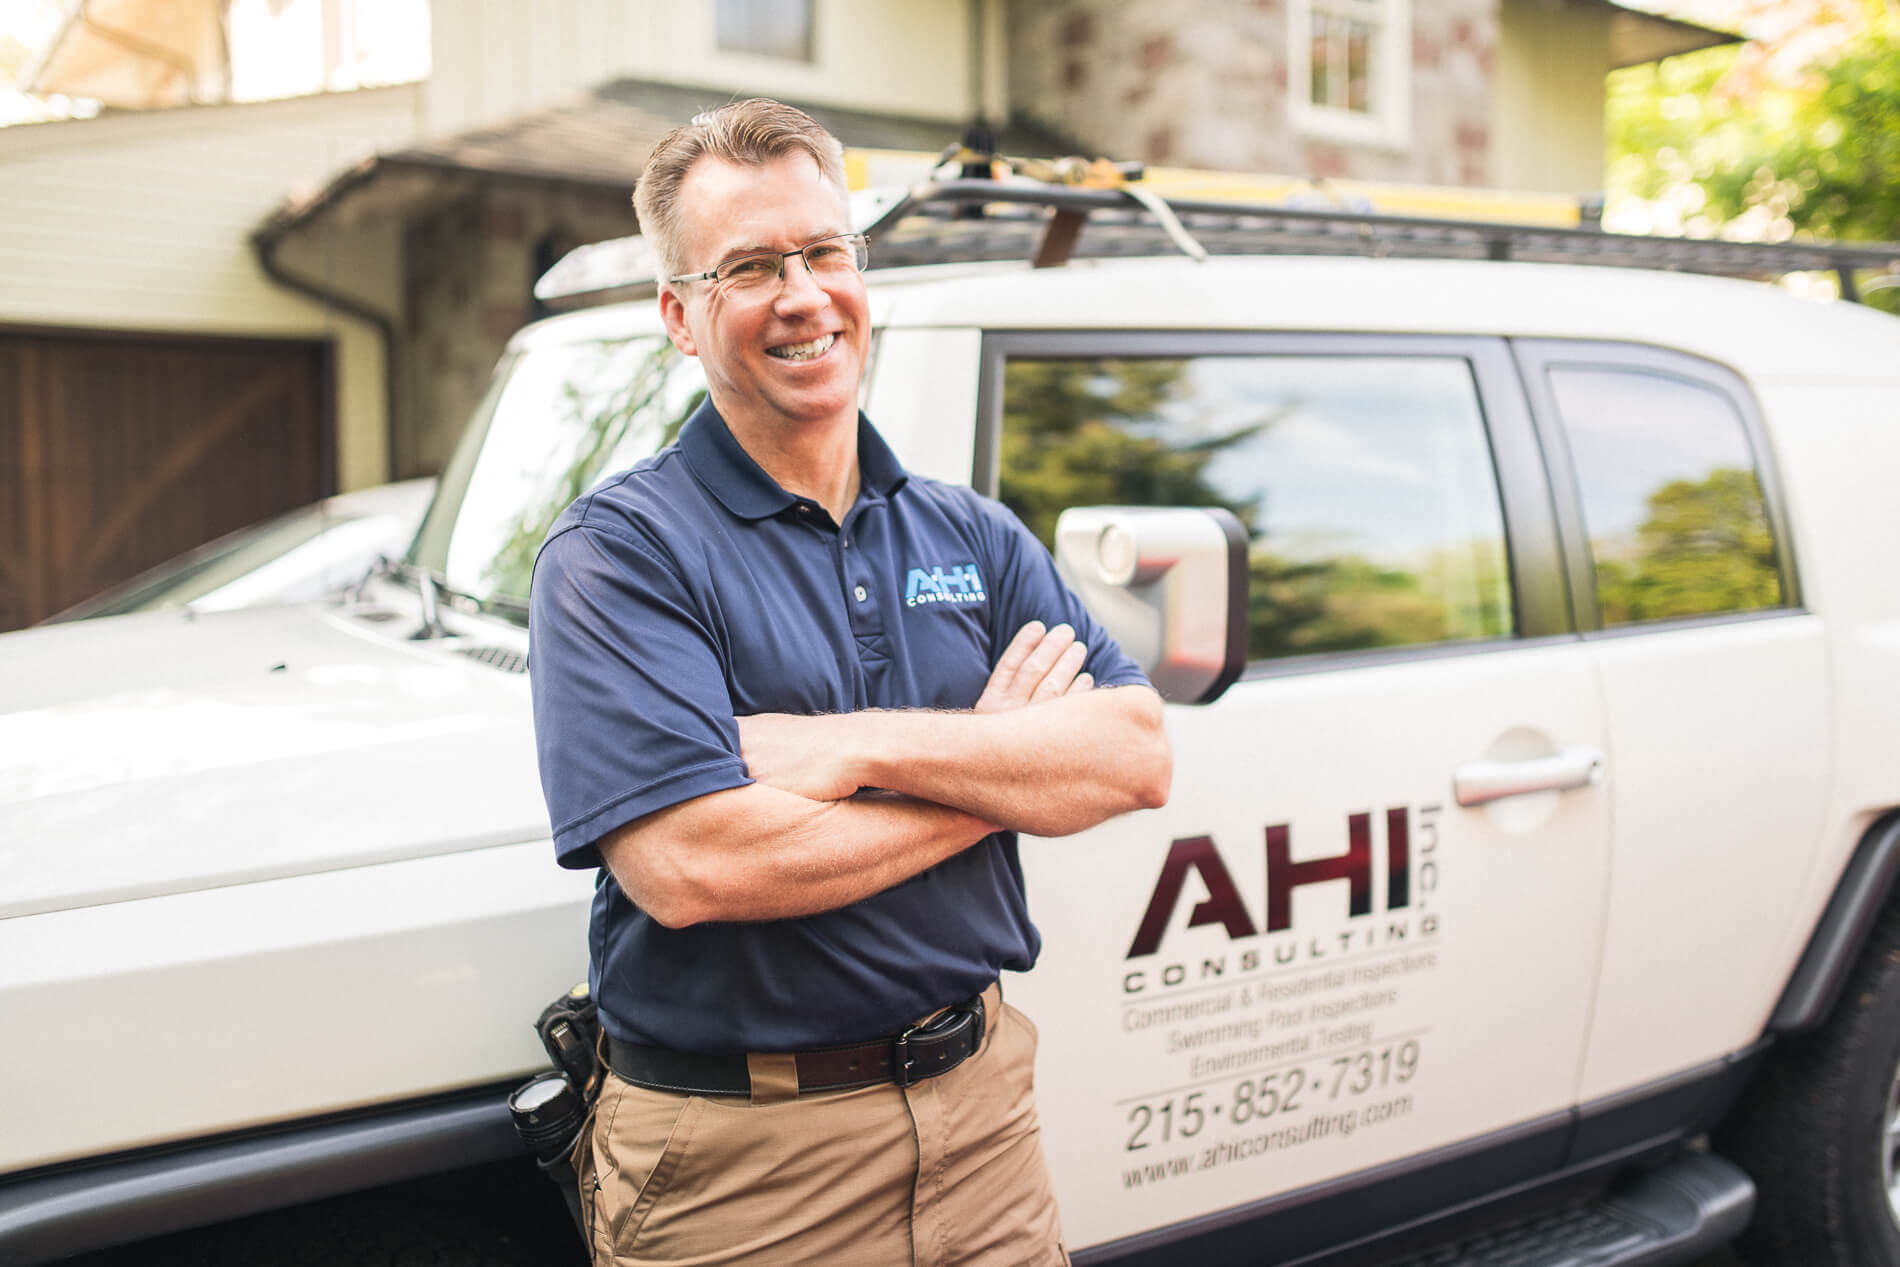 Peter Muehlbronner Philadelphia Home Inspections AHI, Inc. - Consulting